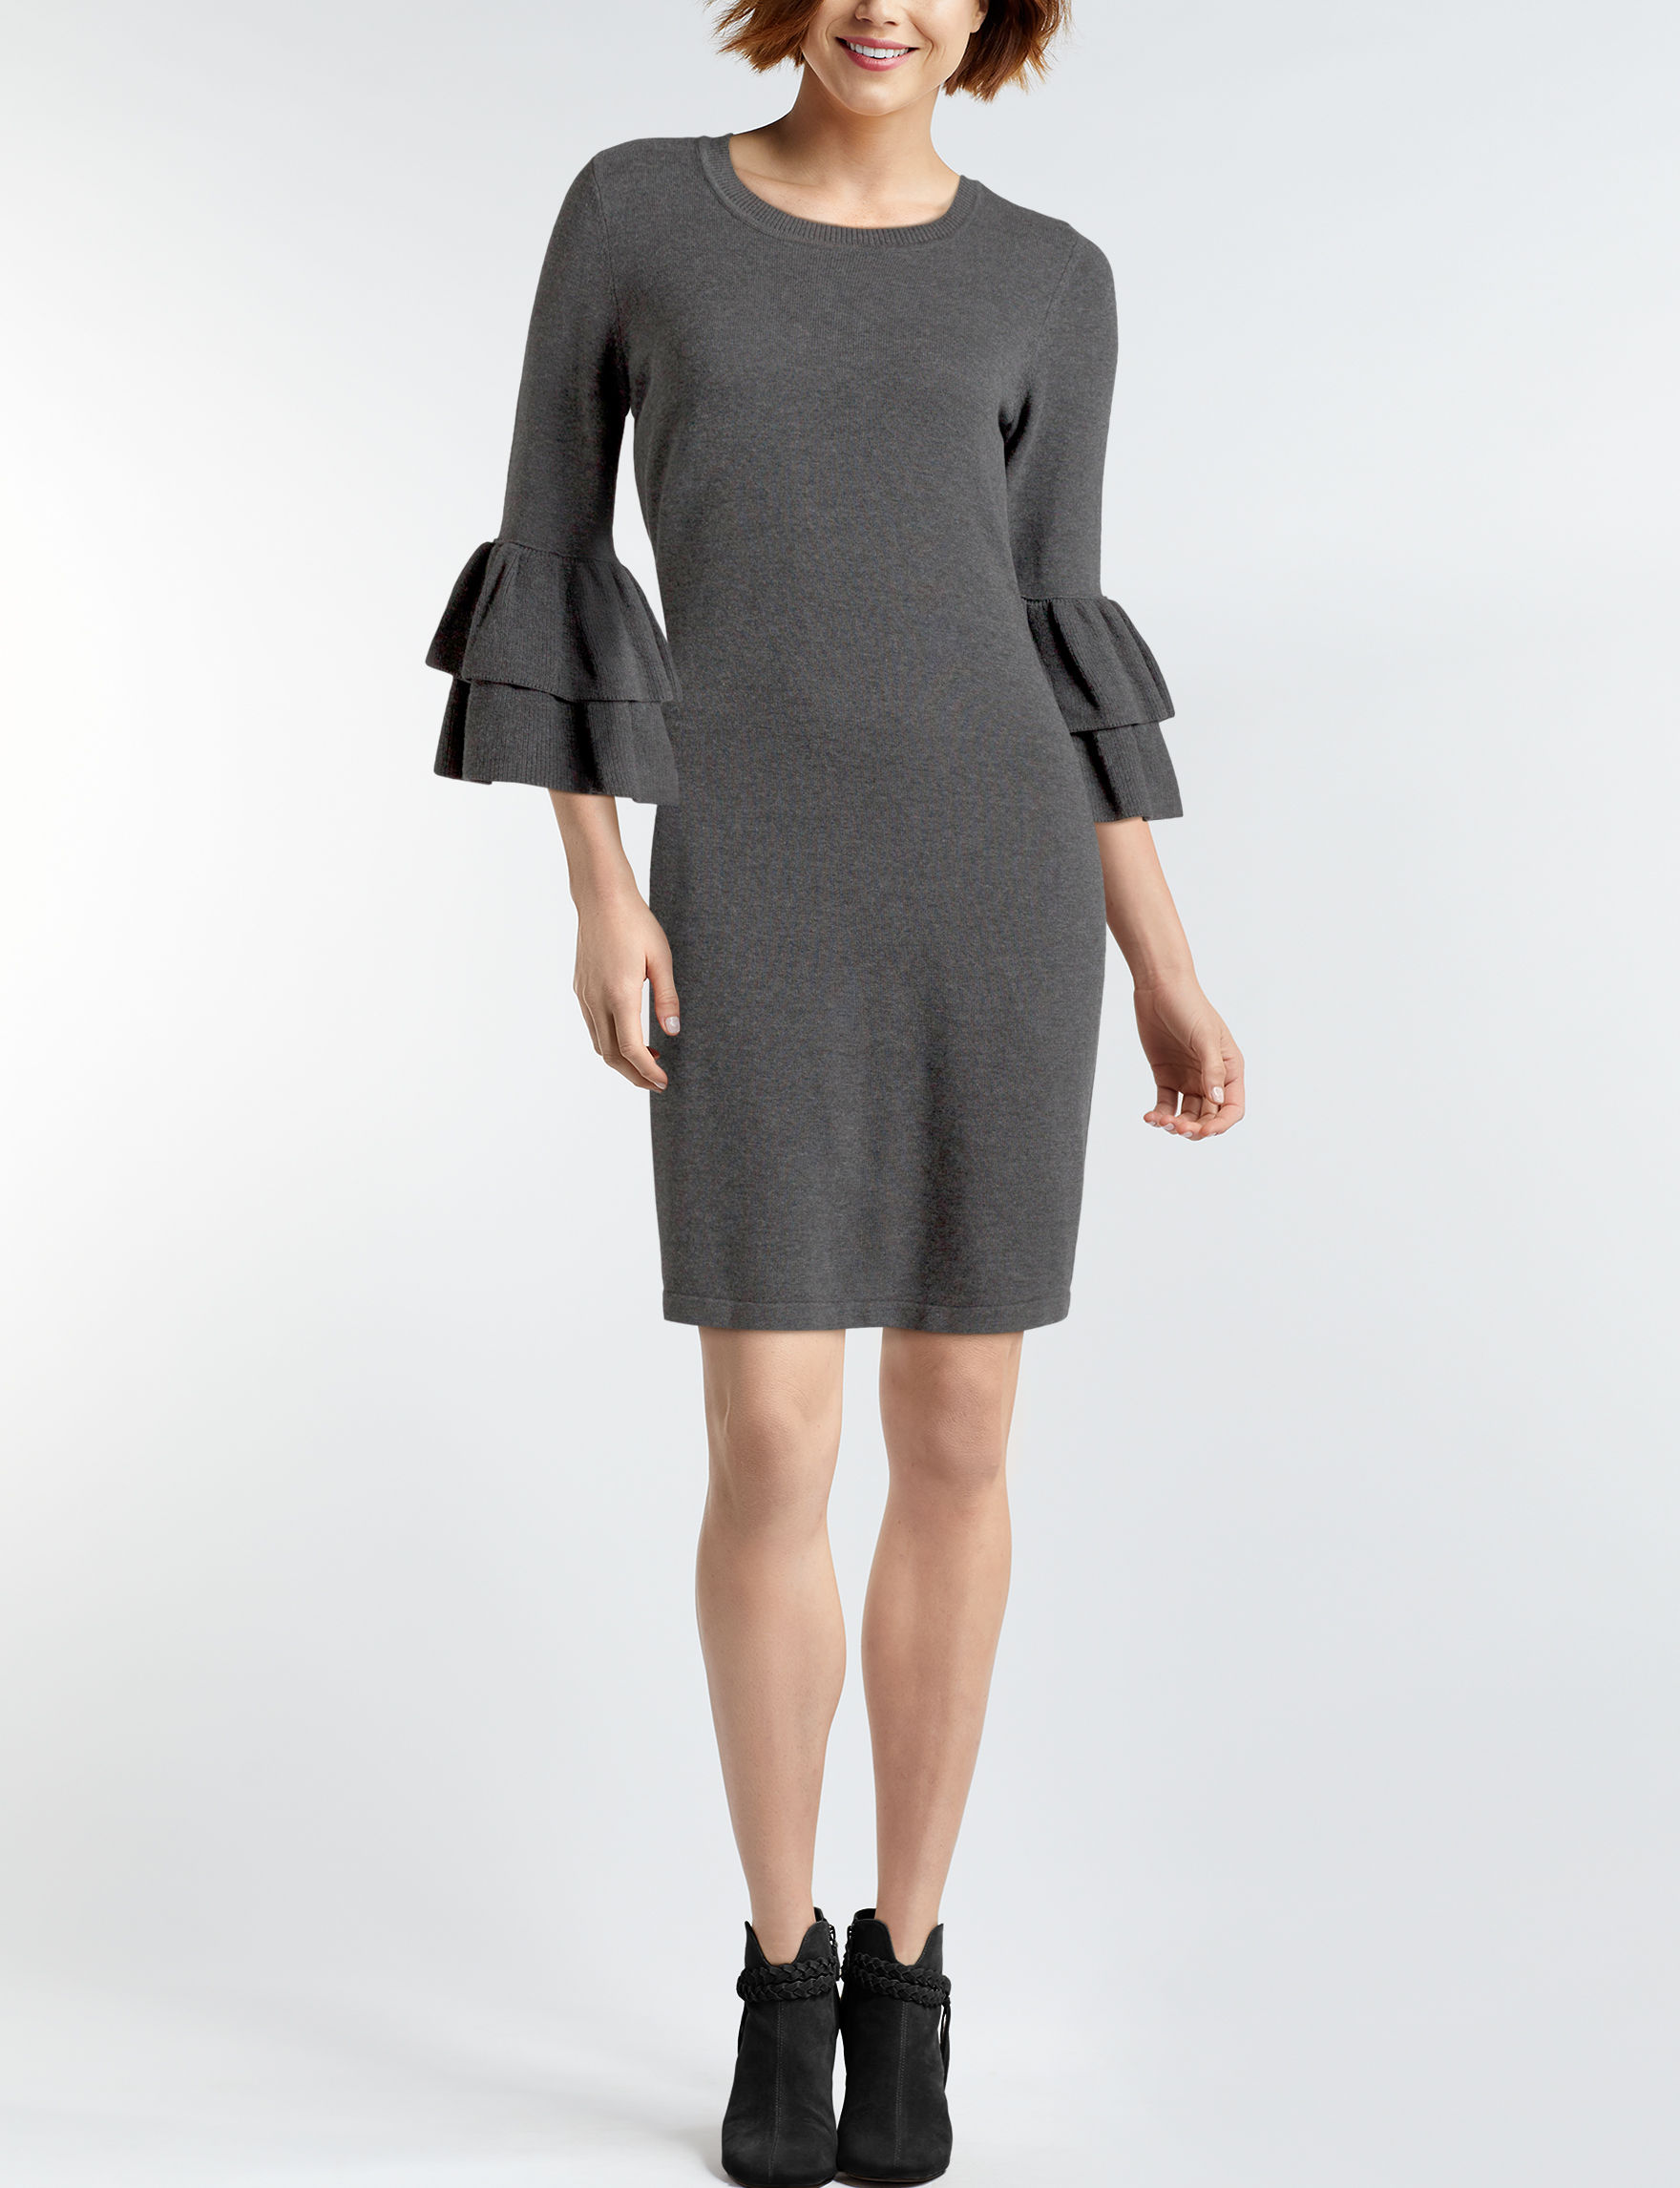 Nine West Grey Everyday & Casual Sweater Dresses